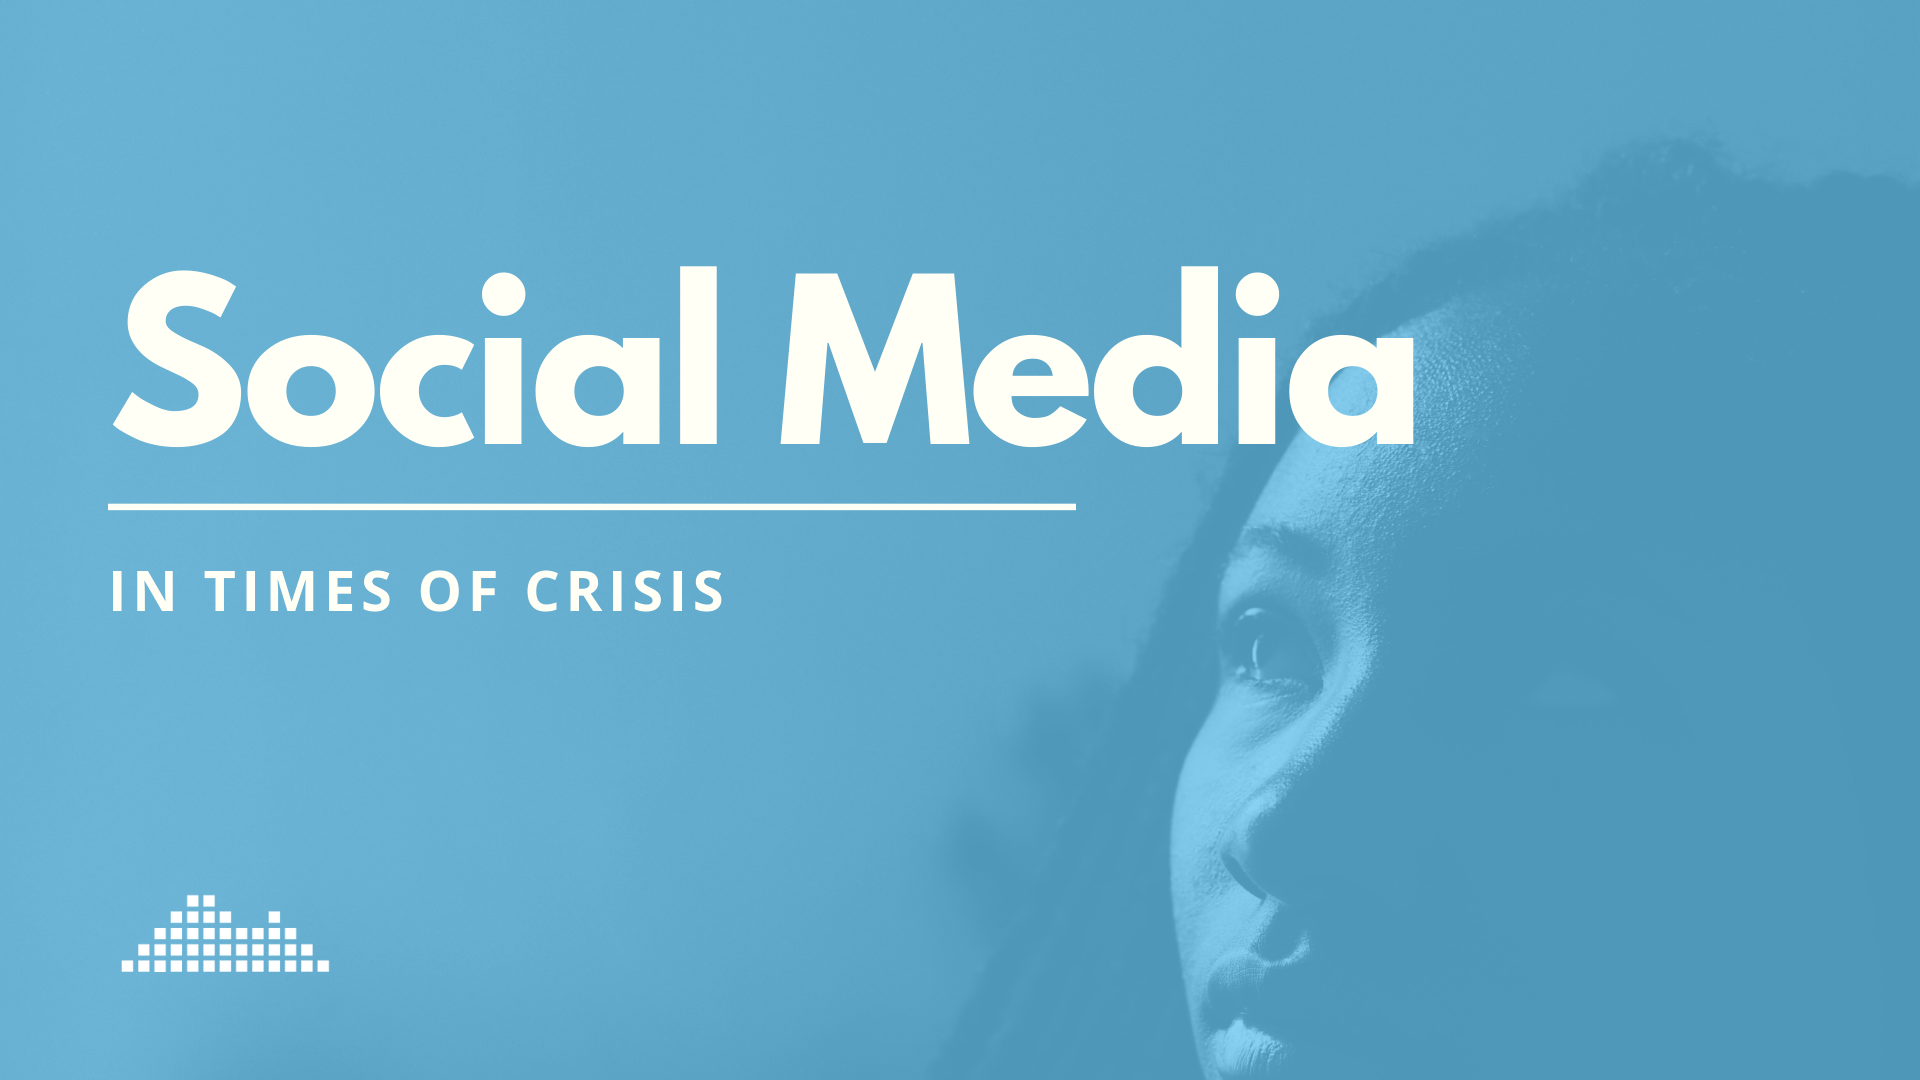 Using Social Media in Times of Crisis